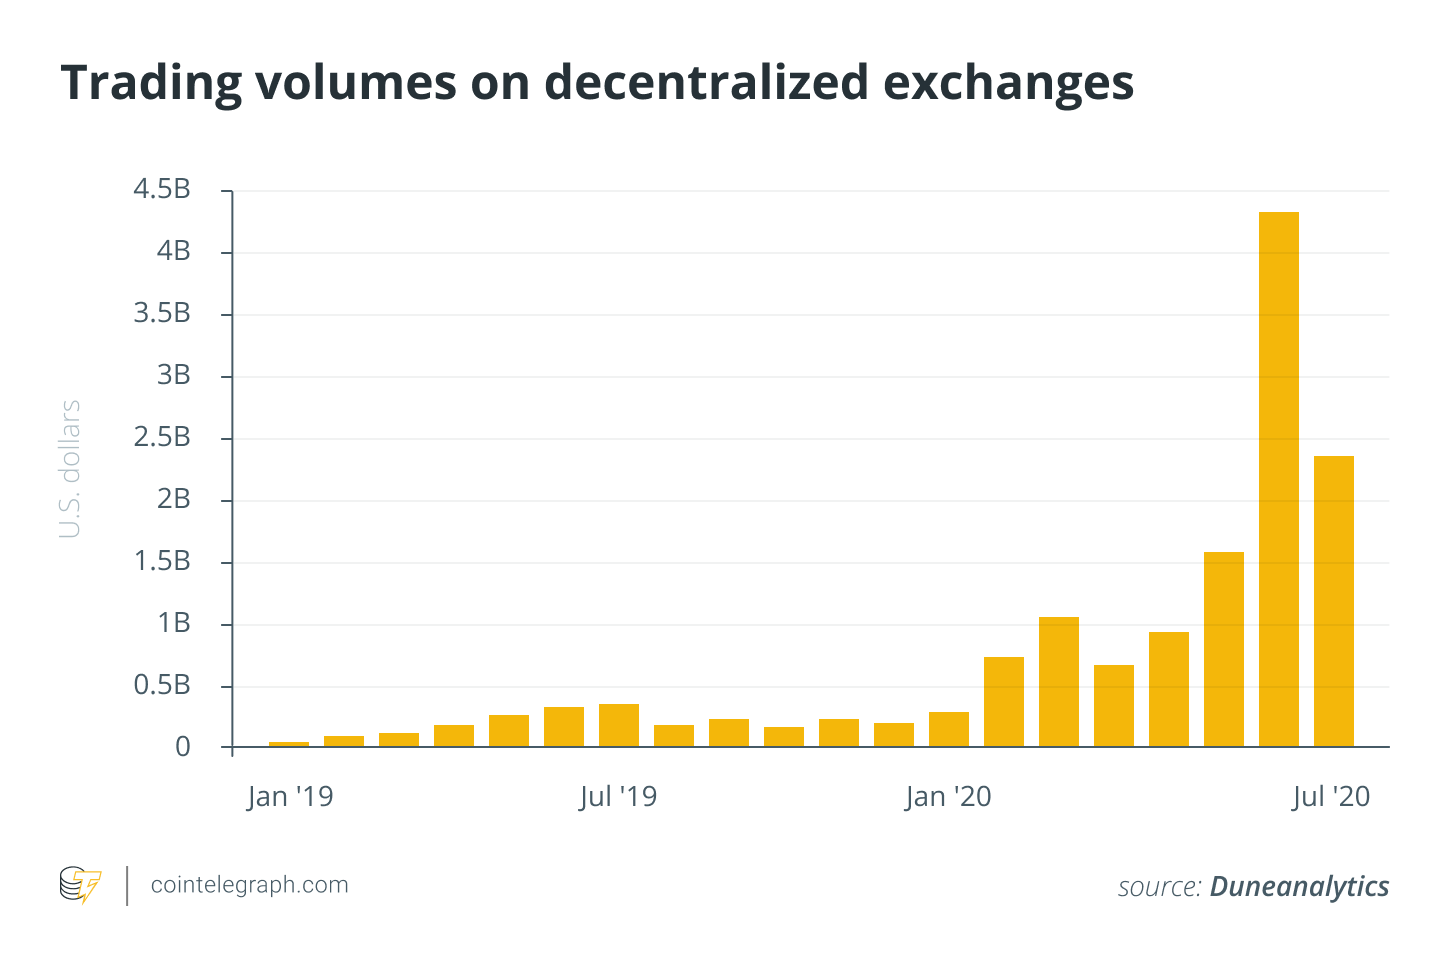 Trading volumes on decentralized exchanges